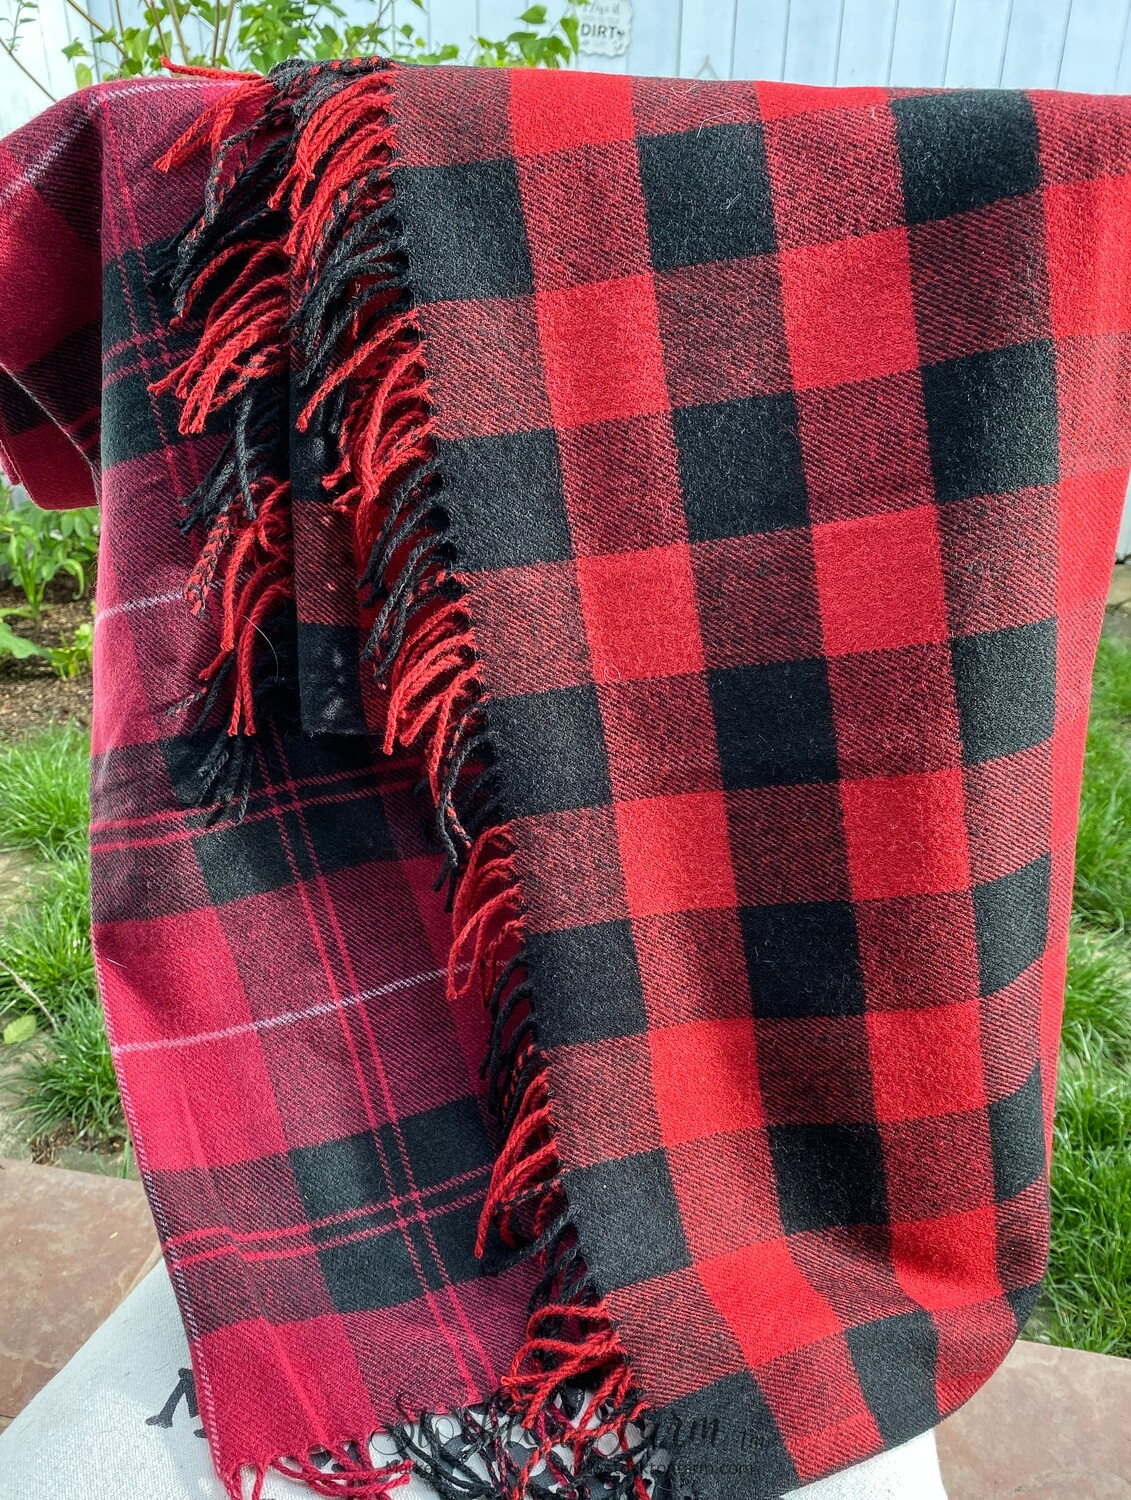 Hildie & Jo Extra Large Blanket Scarf - Free Shipping!